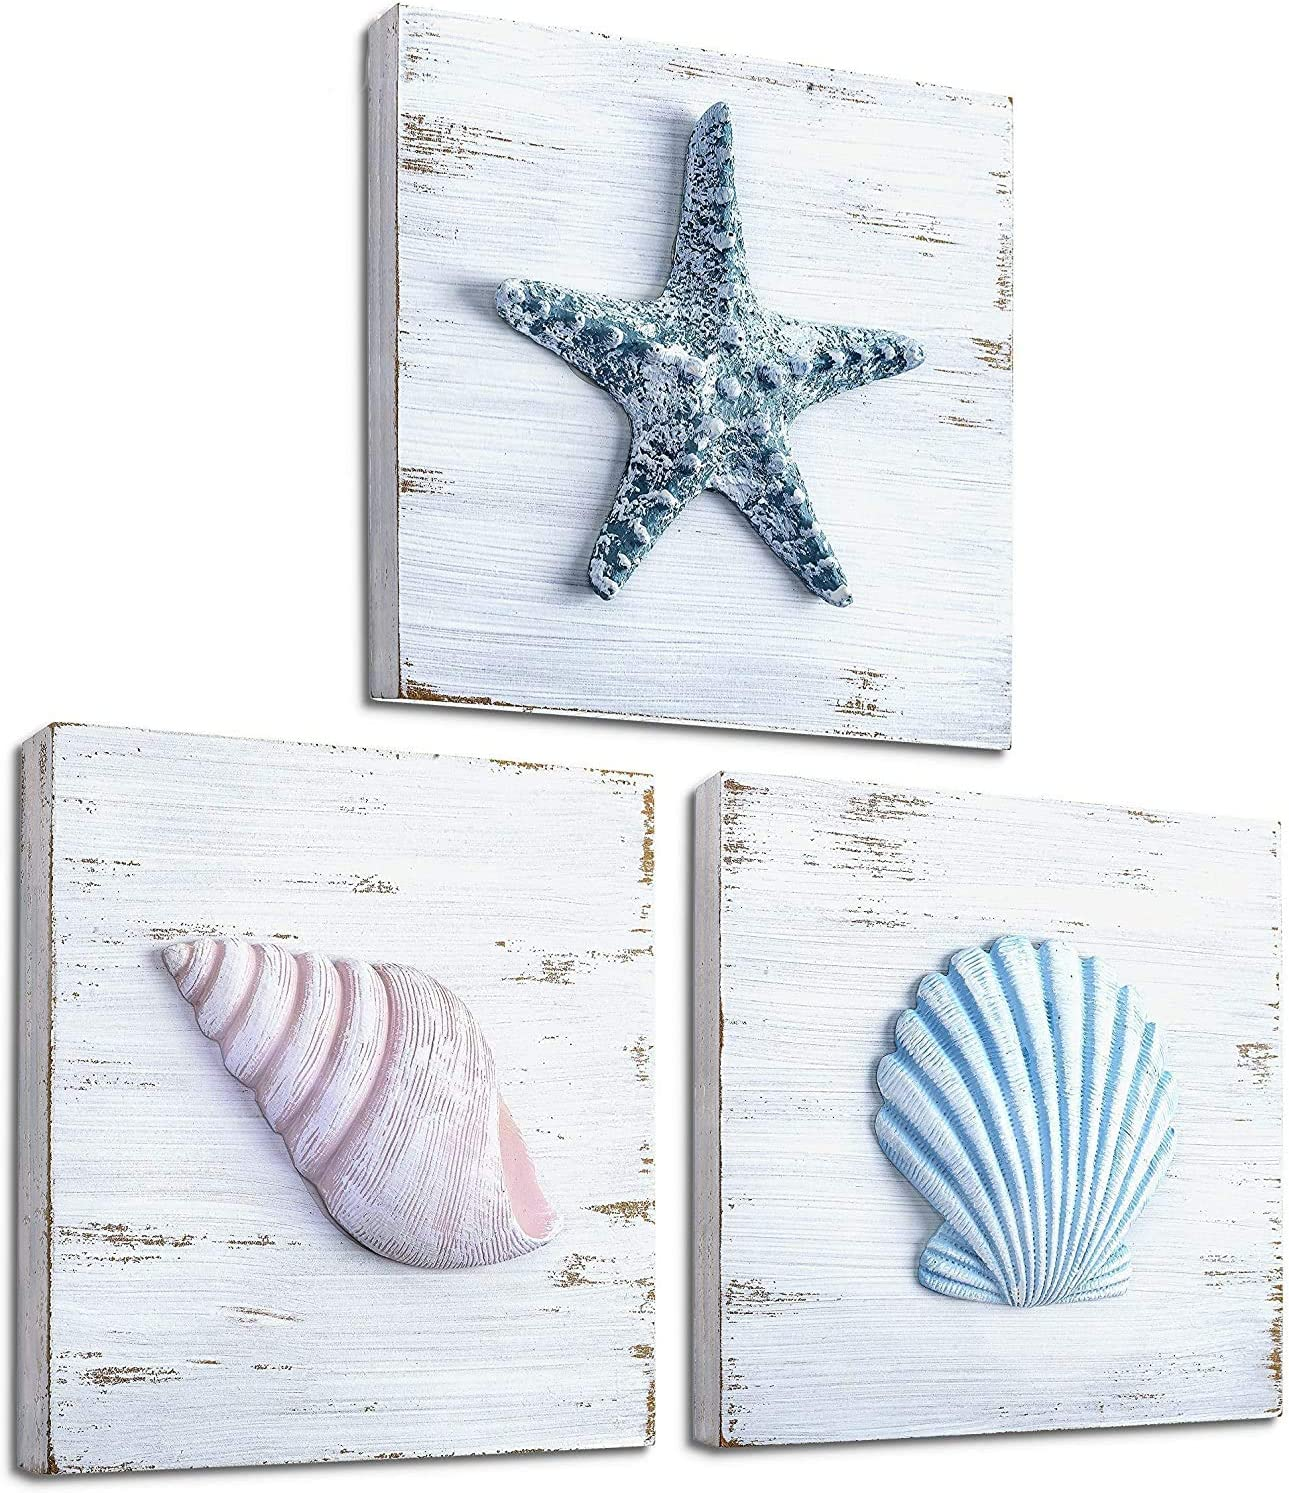 Amazon Com Tideandtales Beach Theme Seashell Wall Decor Set Of 3 Shells And Starfish Beach Decor For Bathroom Bedroom Or Living Room Rustic Coastal Decor Ocean Inspired Beach Decorations For